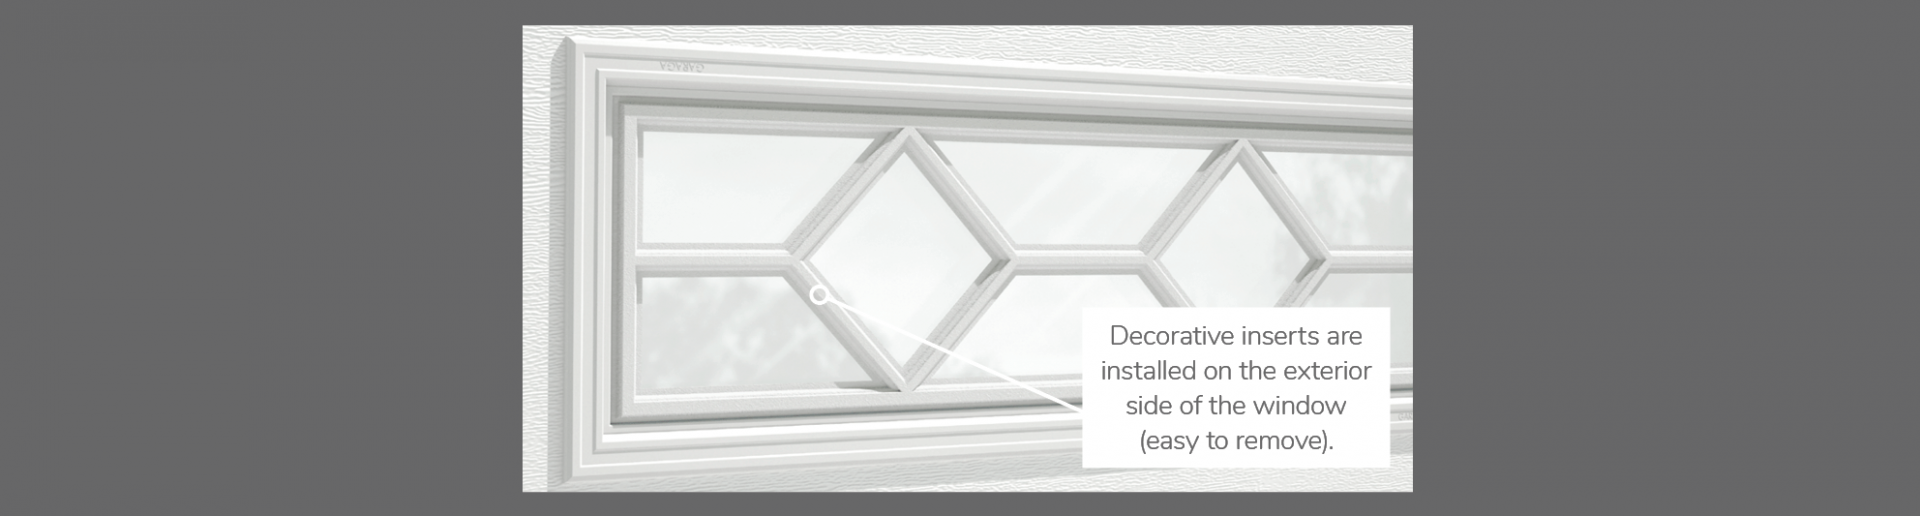 "Waterton Decorative Insert, 40"" x 13"", available for door R-16 and R-12"